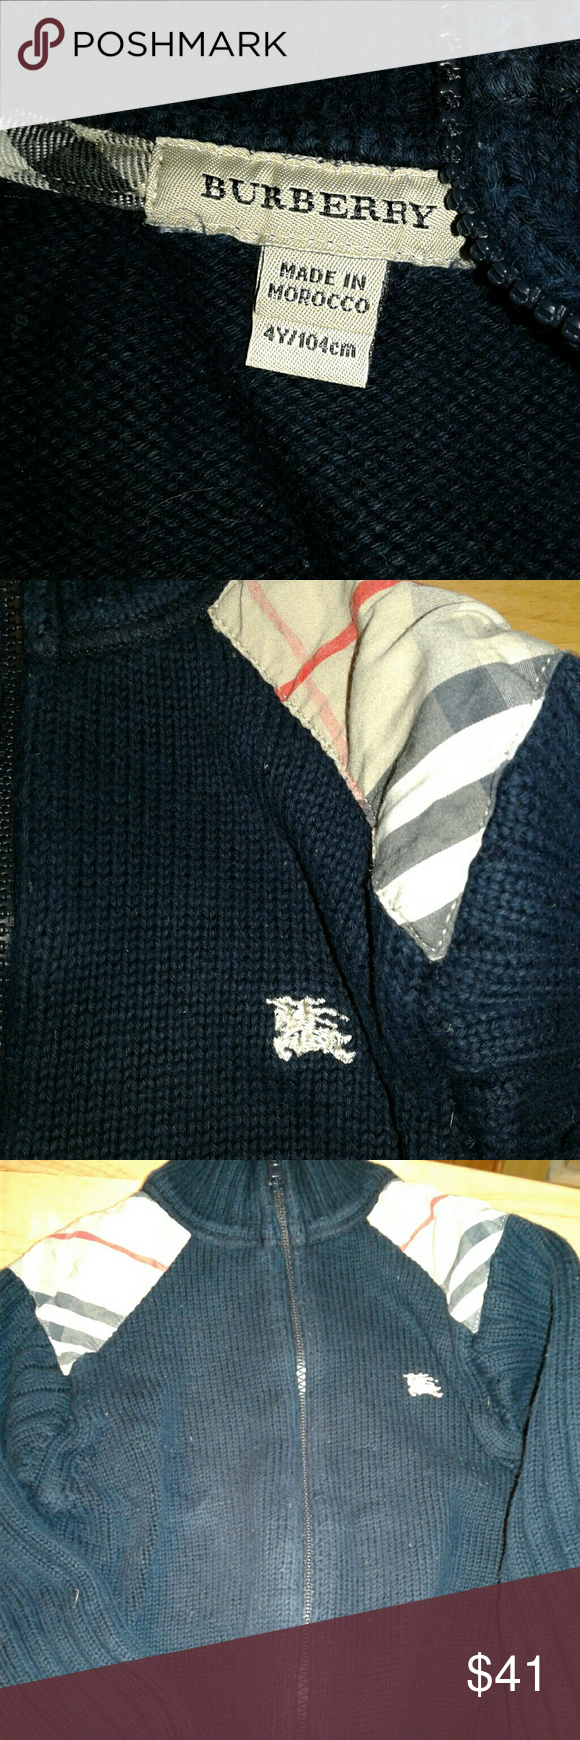 Burberry Sweater And Polo Rl Top Combo Burberry Sweater Sweaters Burberry